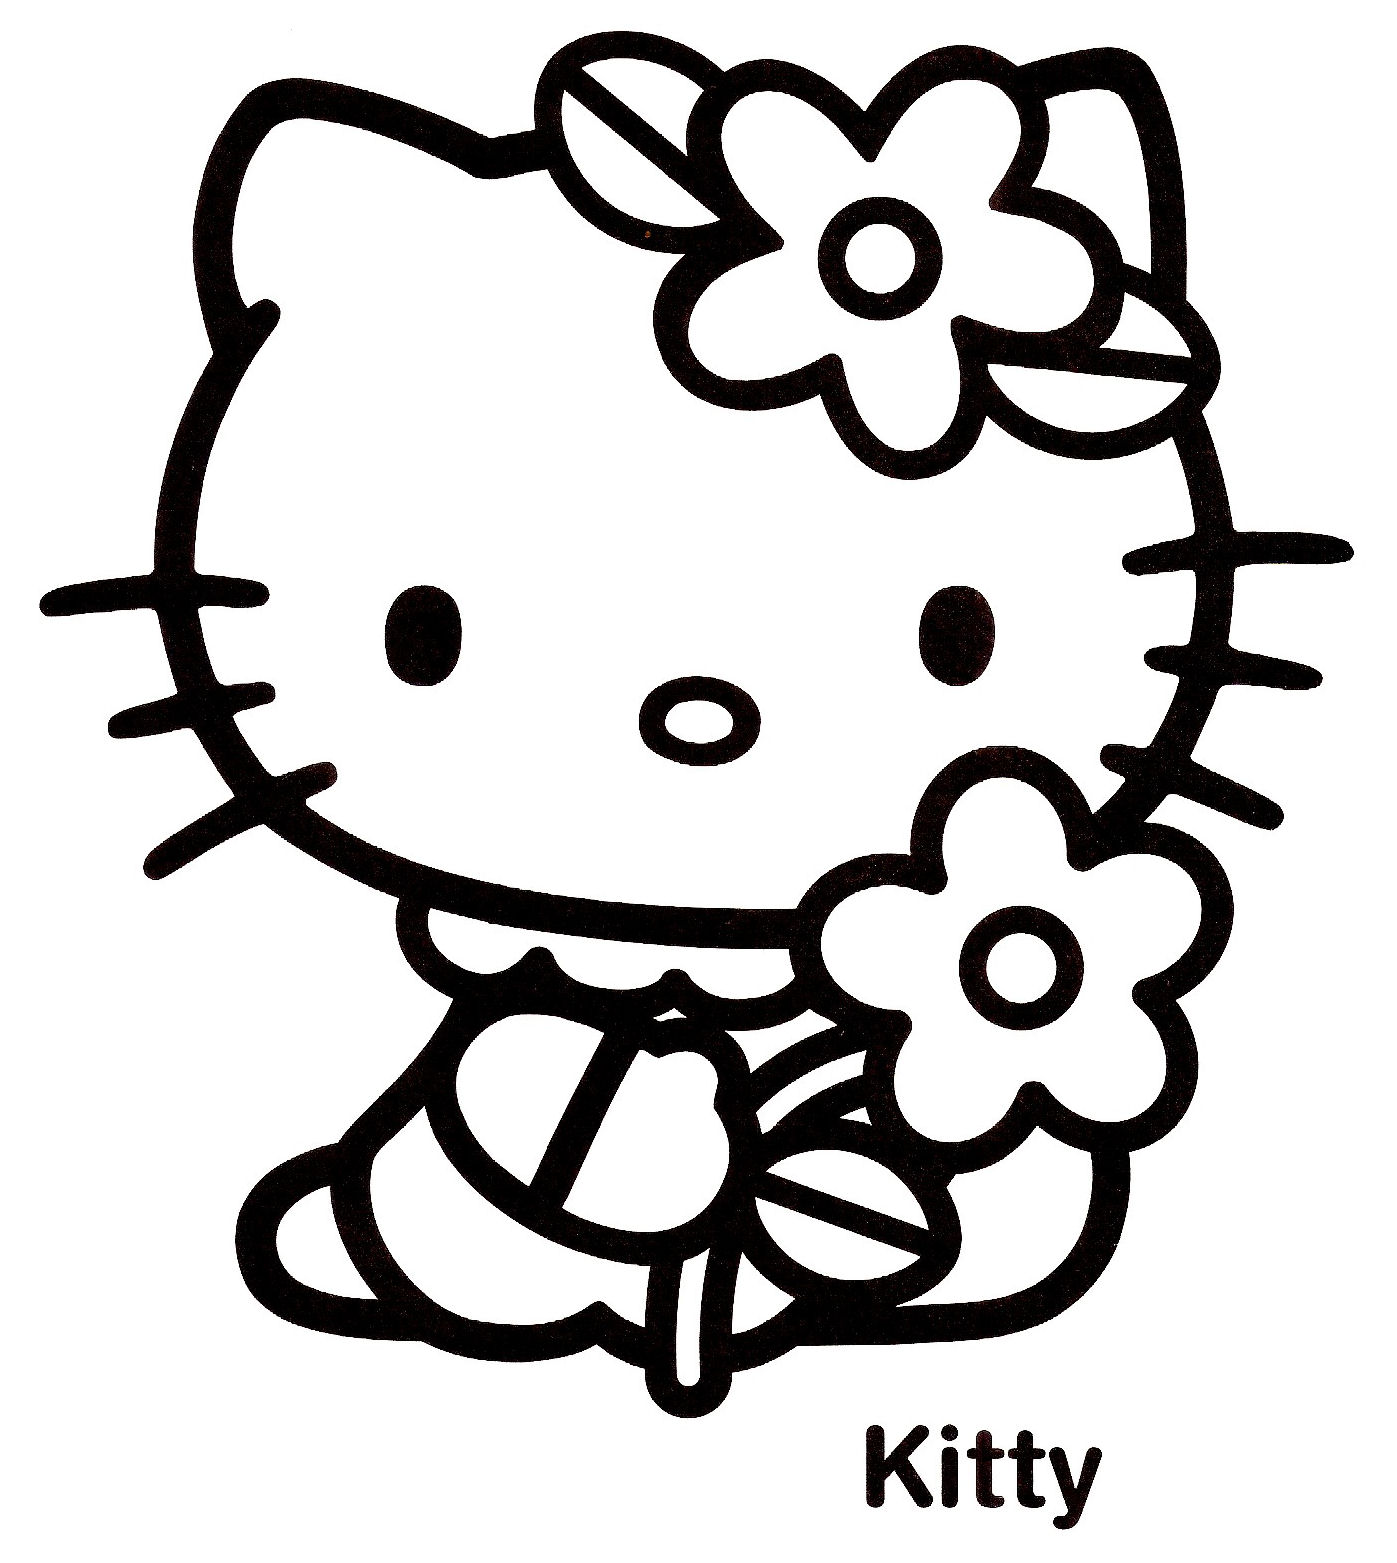 coloriage gratuit hello kitty - Coloriage Gratuit